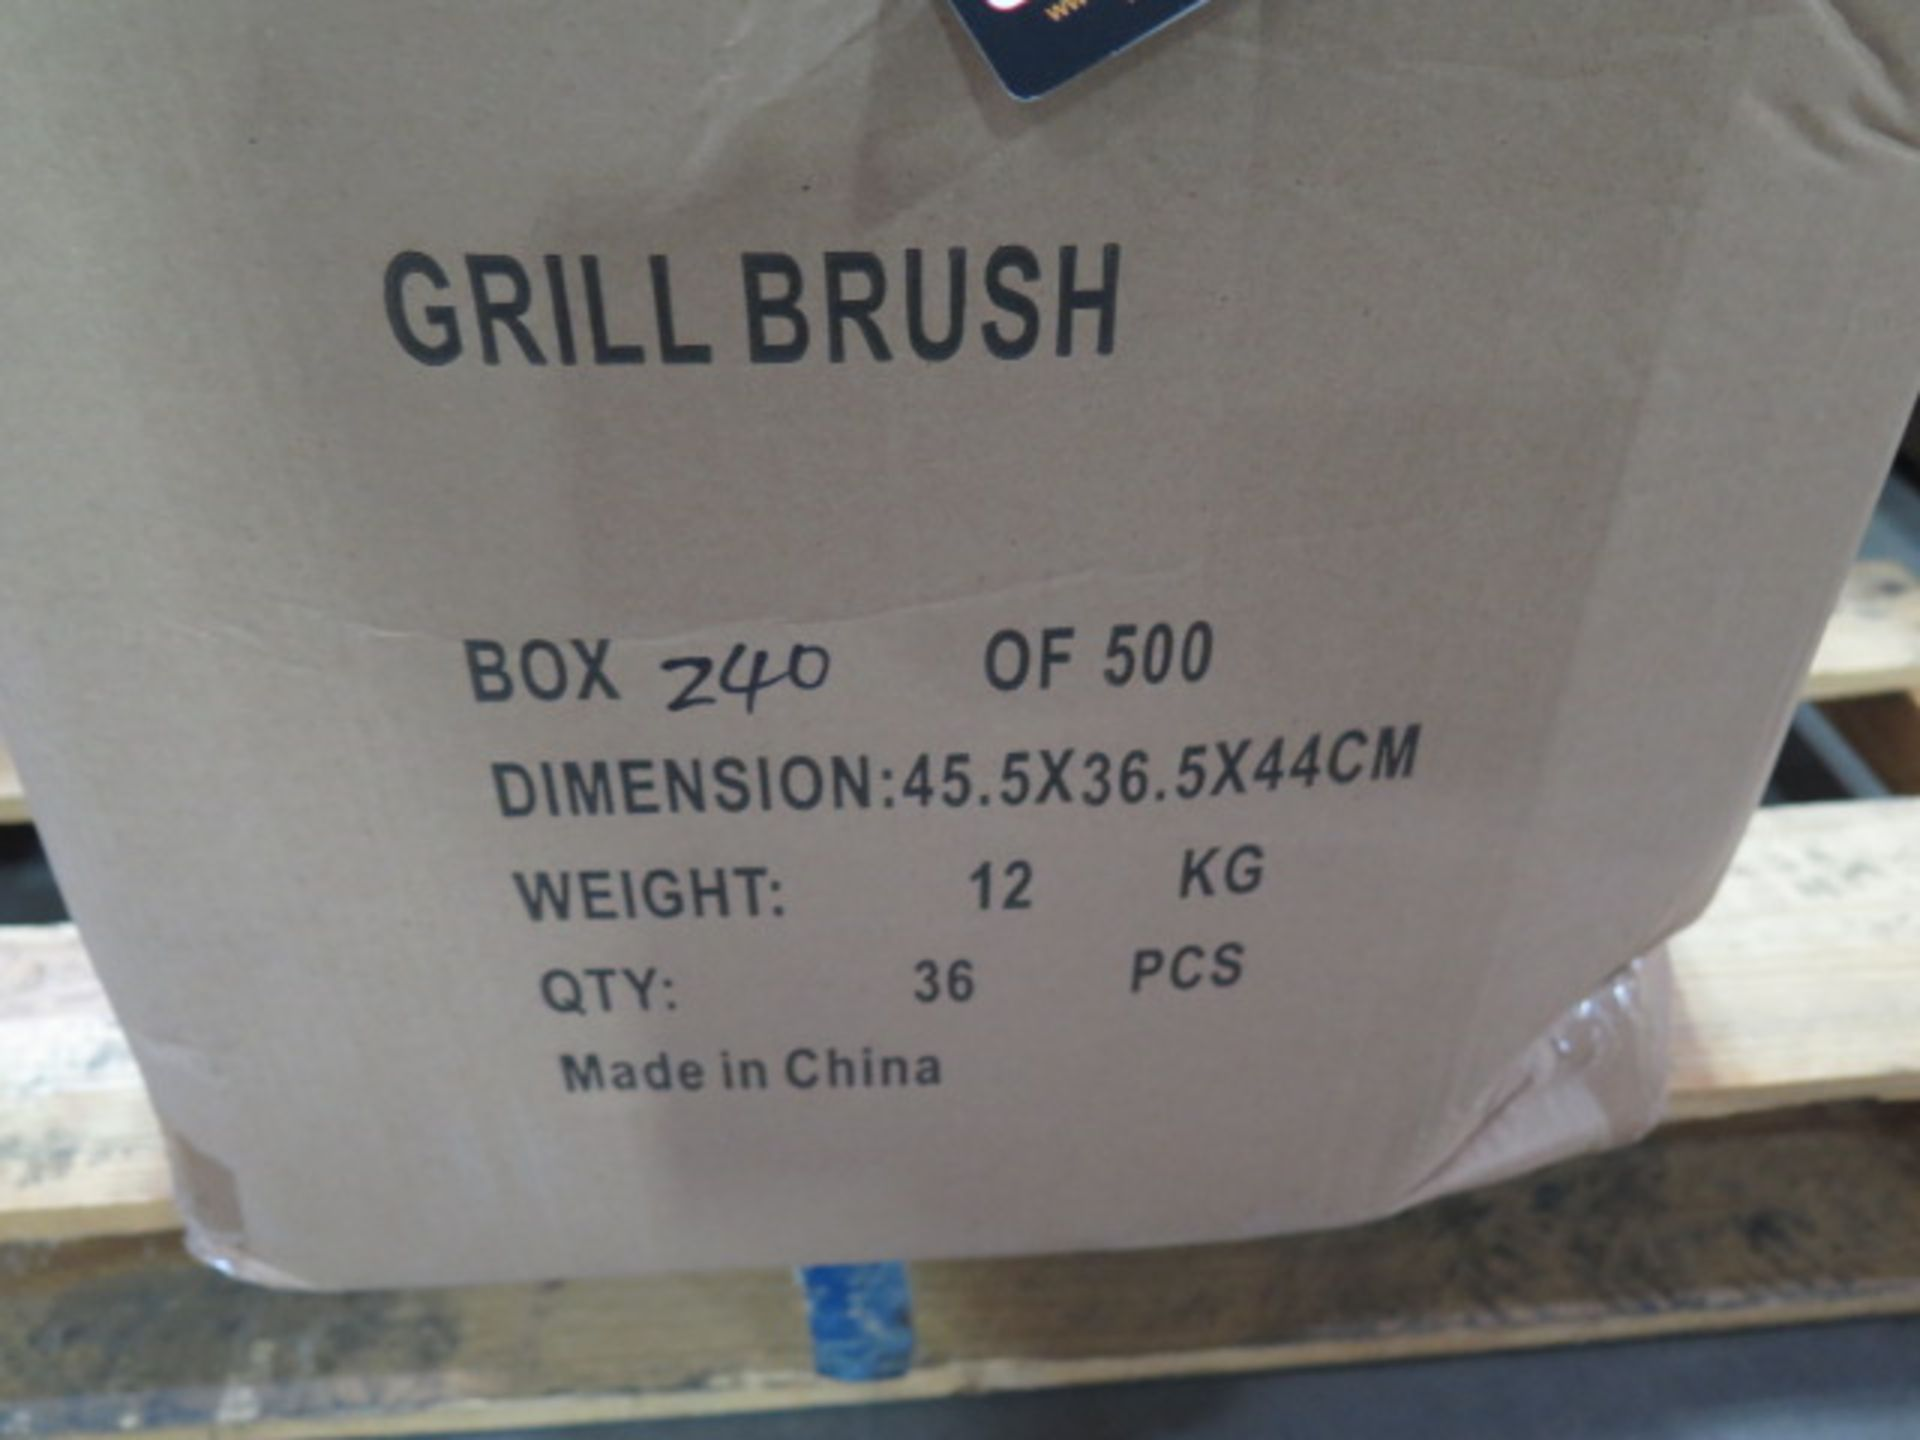 BBQ Grill Brushes (NEW INVENTORY) (Approx 180) (SOLD AS-IS - NO WARRANTY) - Image 5 of 5